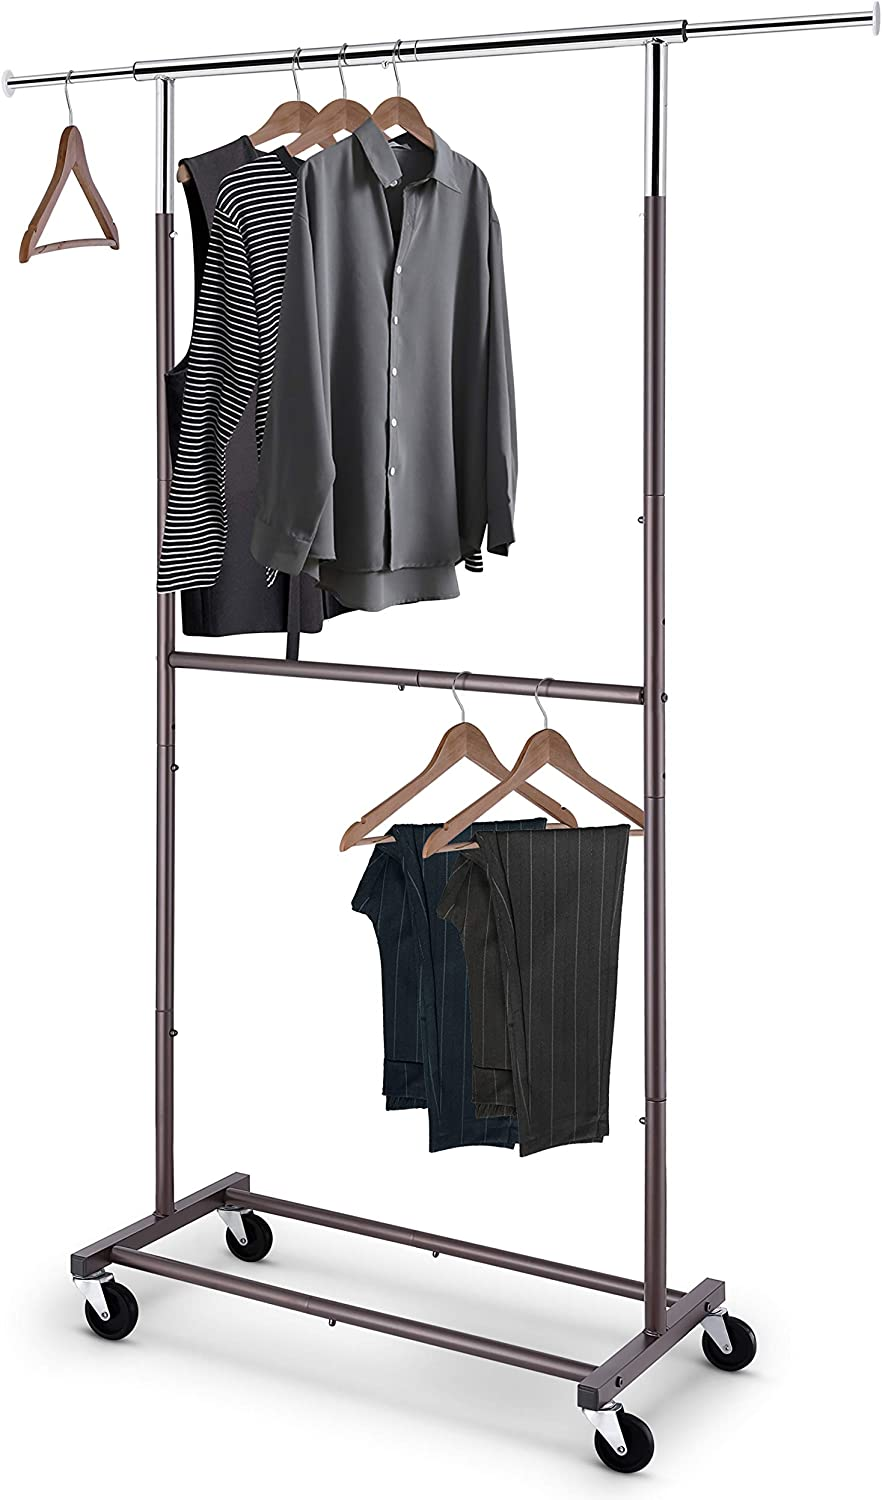 Holds up to 300 lbs Simple Trending Double Rail Clothes Garment Rack Heavy Duty Commercial Grade Clothing Rolling Rack on Wheels and Bottom Shelves Bronze